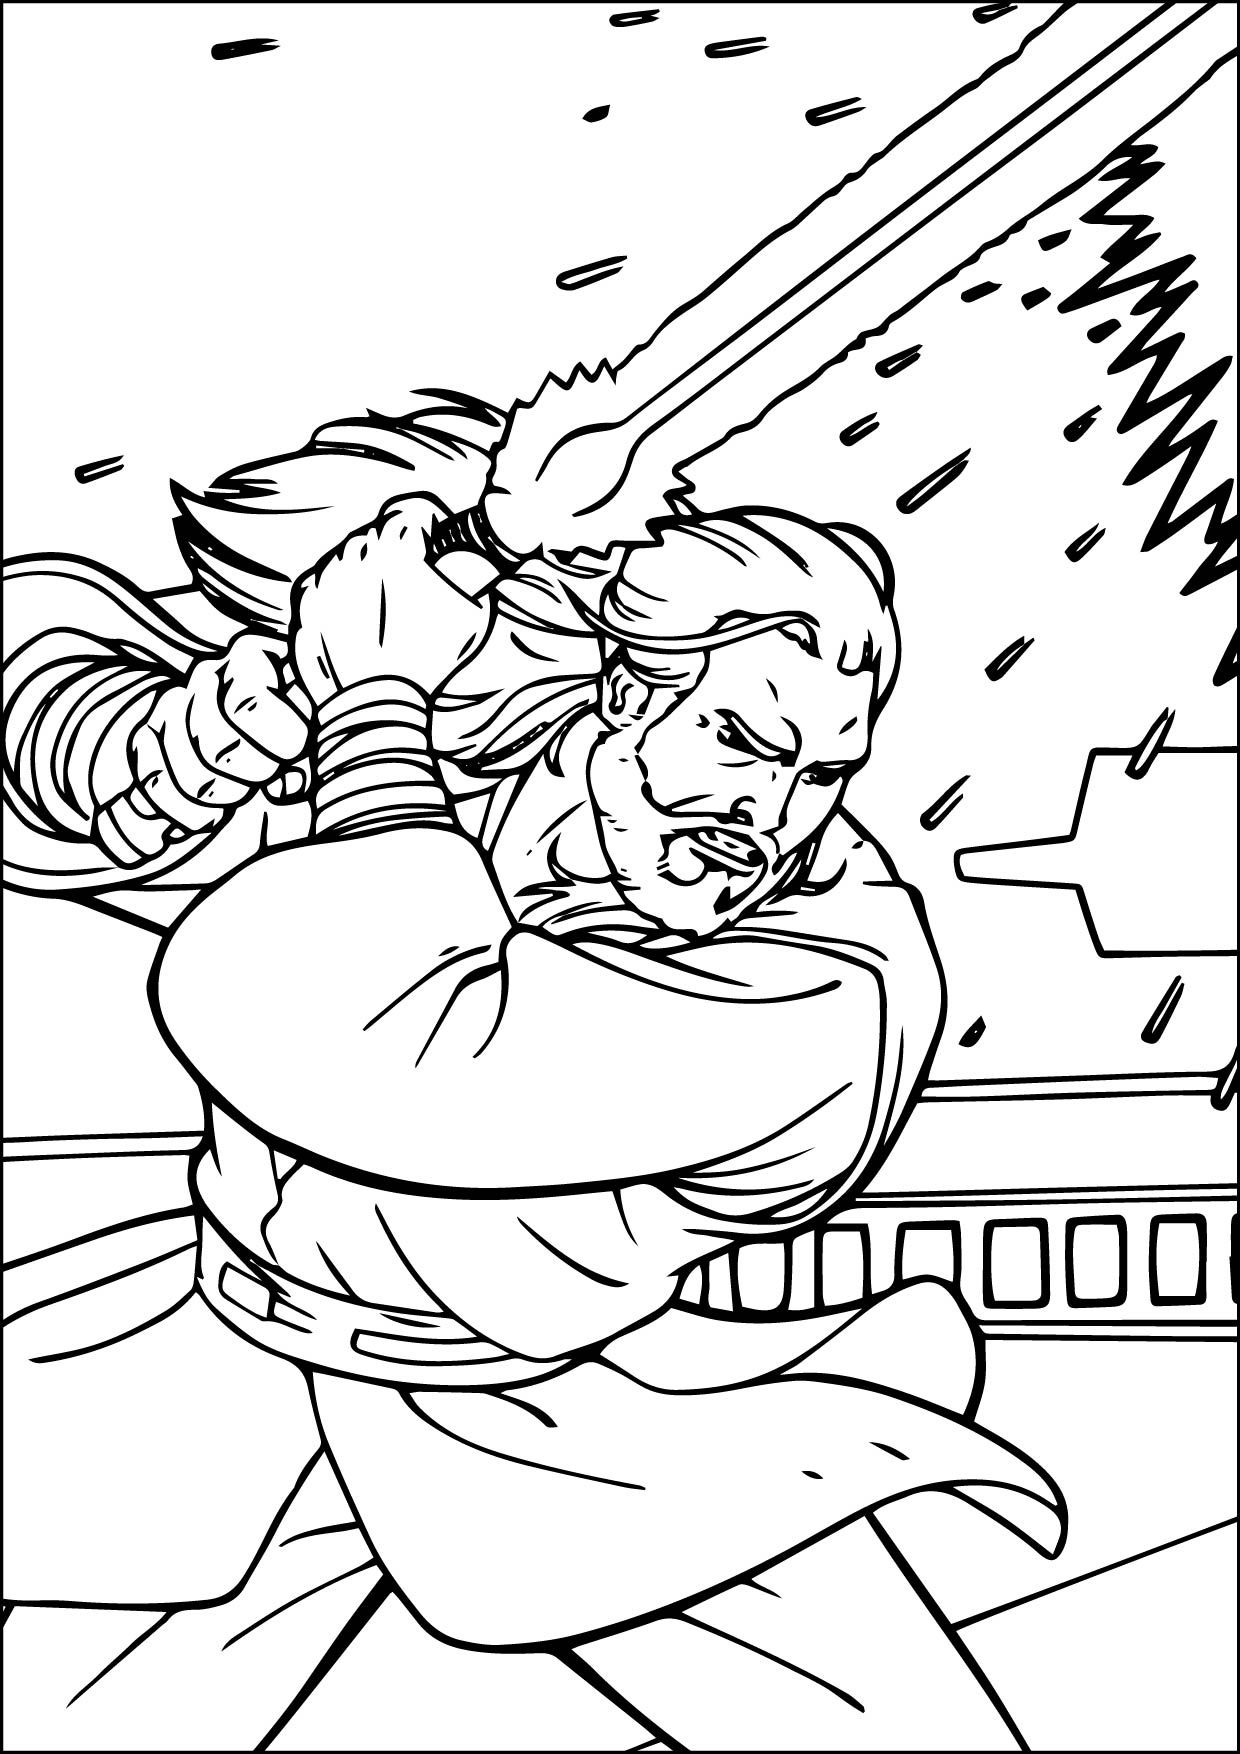 cool coloring page 10-10-2015_183337-01 Check more at http ...